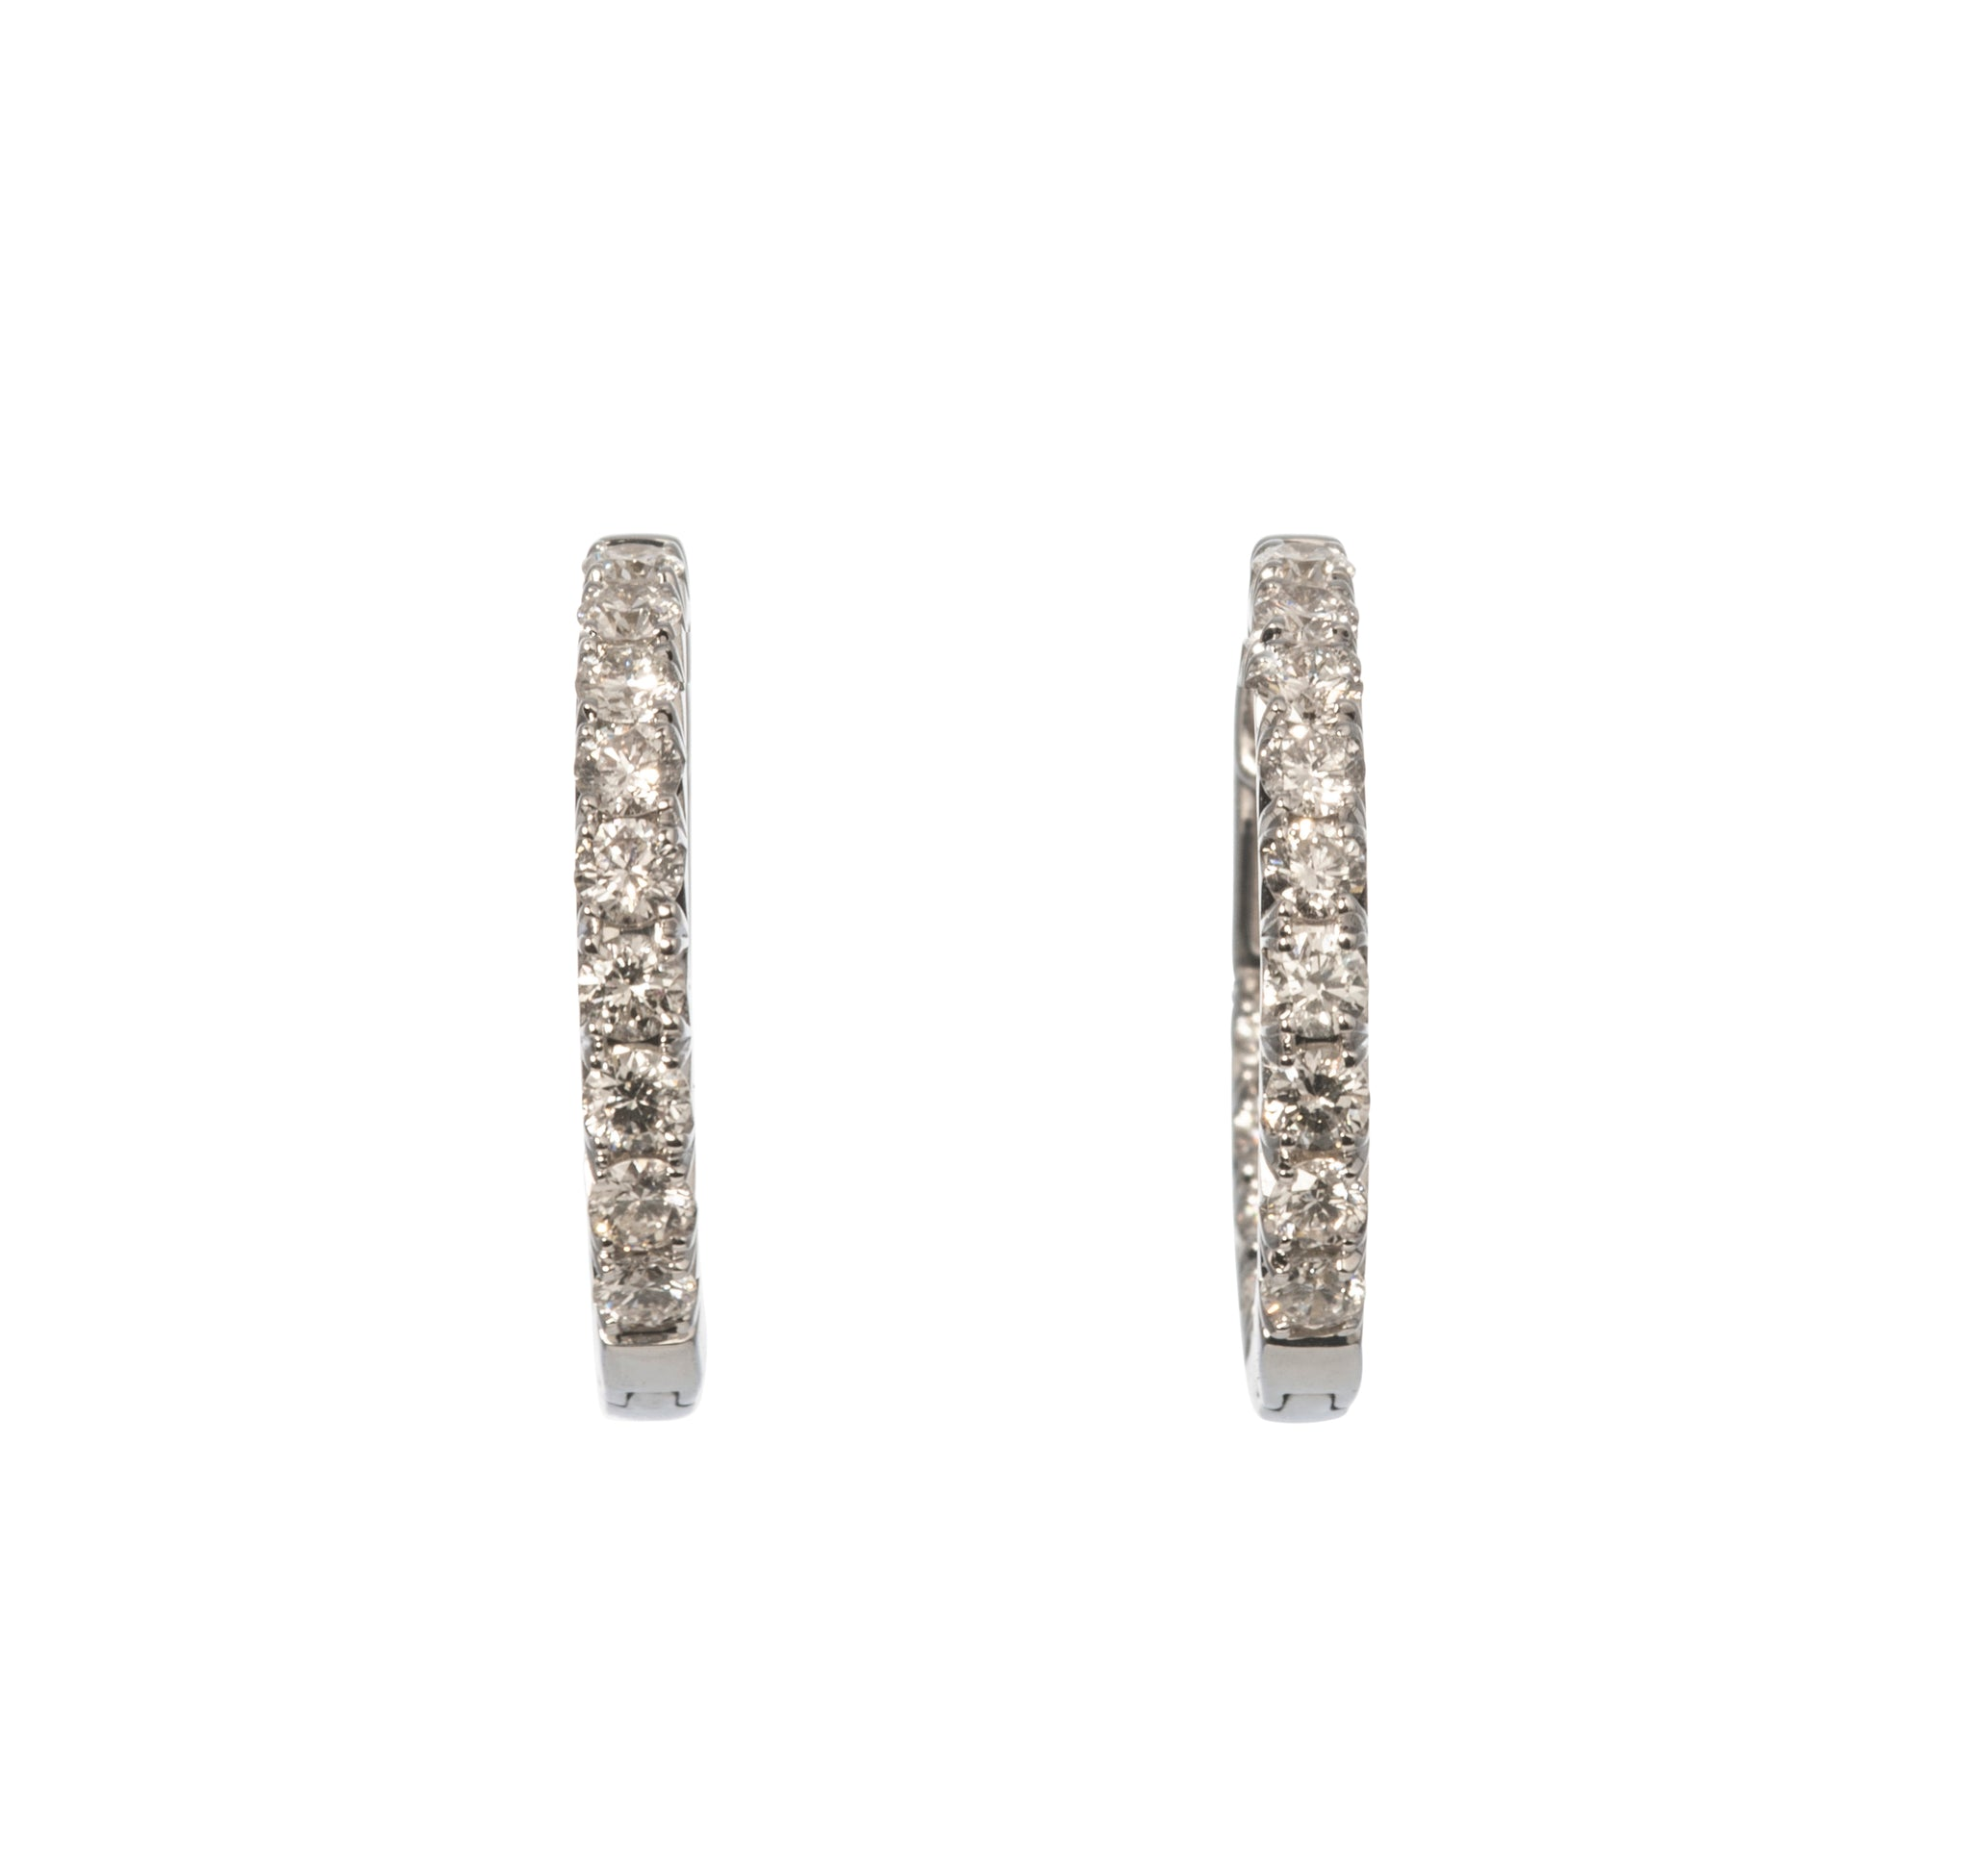 1.01ct Diamond 14K White Gold Hoop Earrings